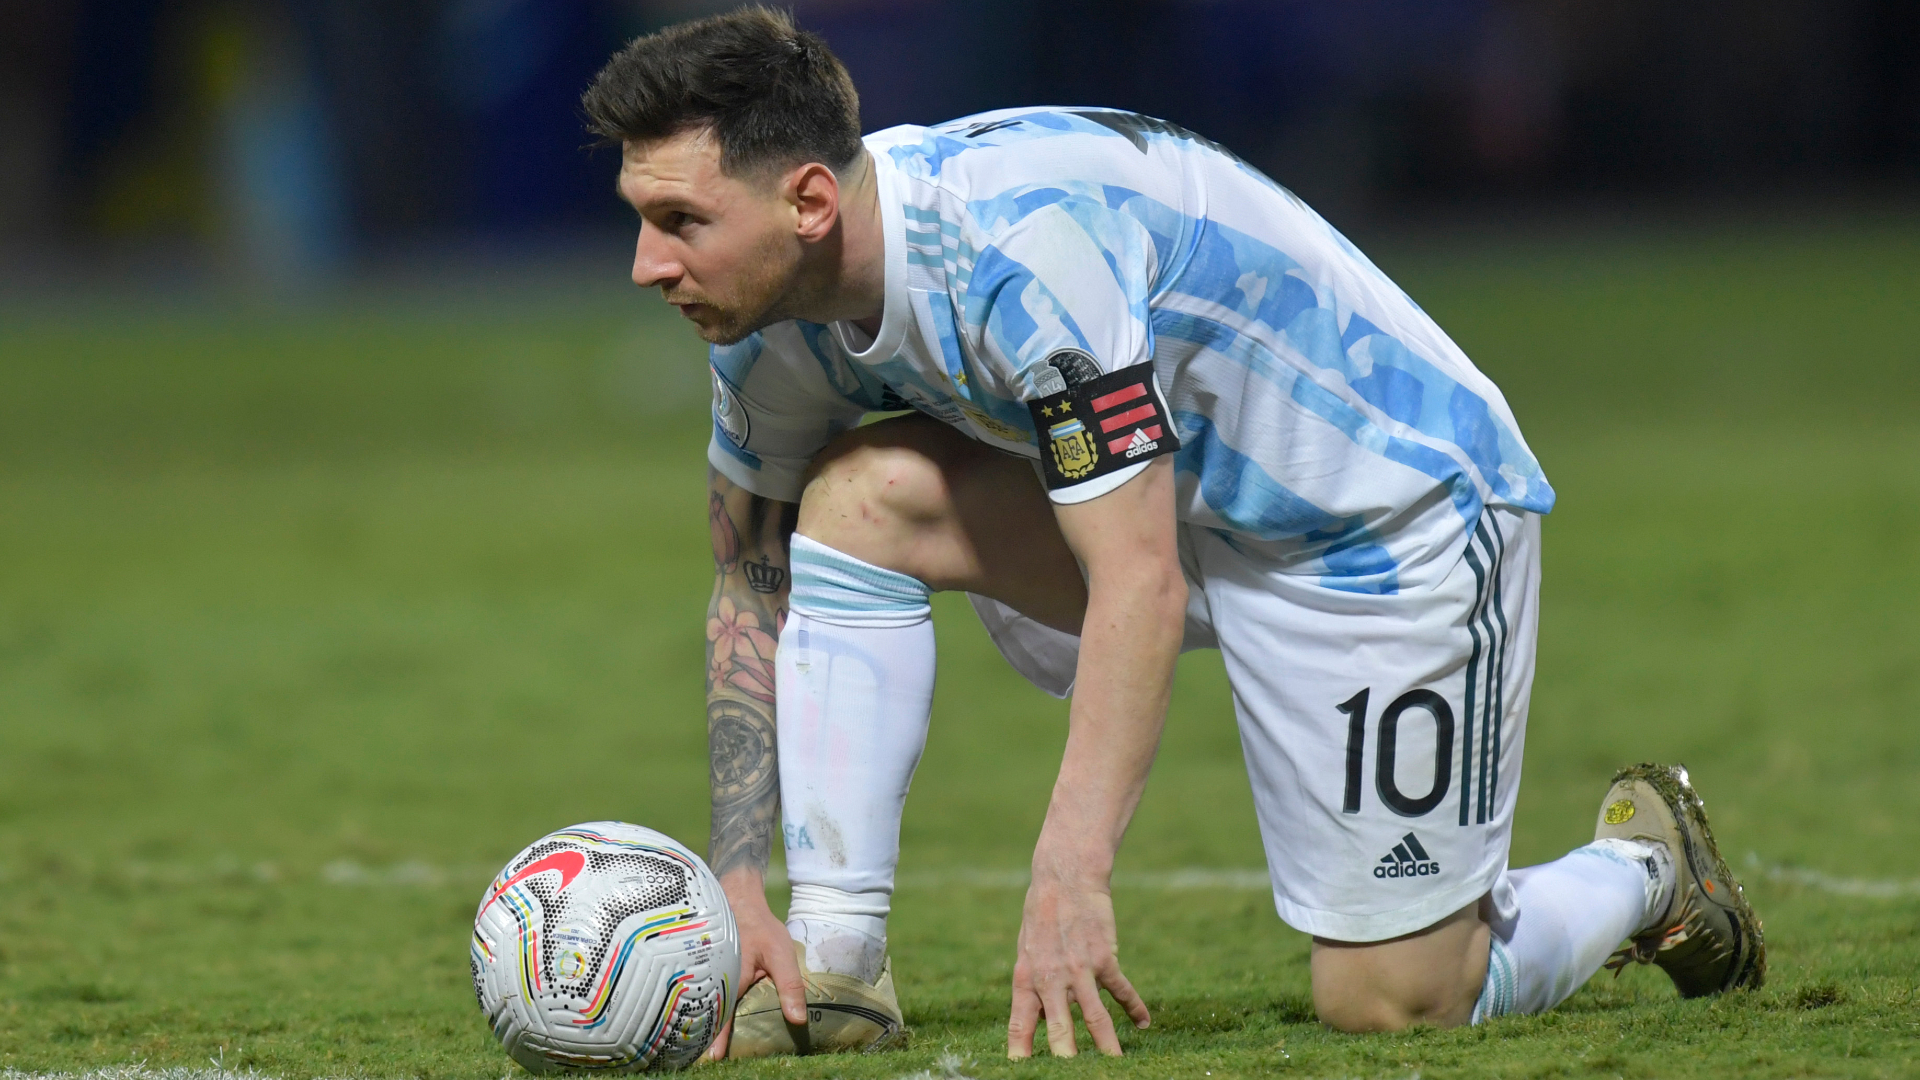 Messi dazzles for Argentina with stunning Copa America quarter-final free kick against Ecuador